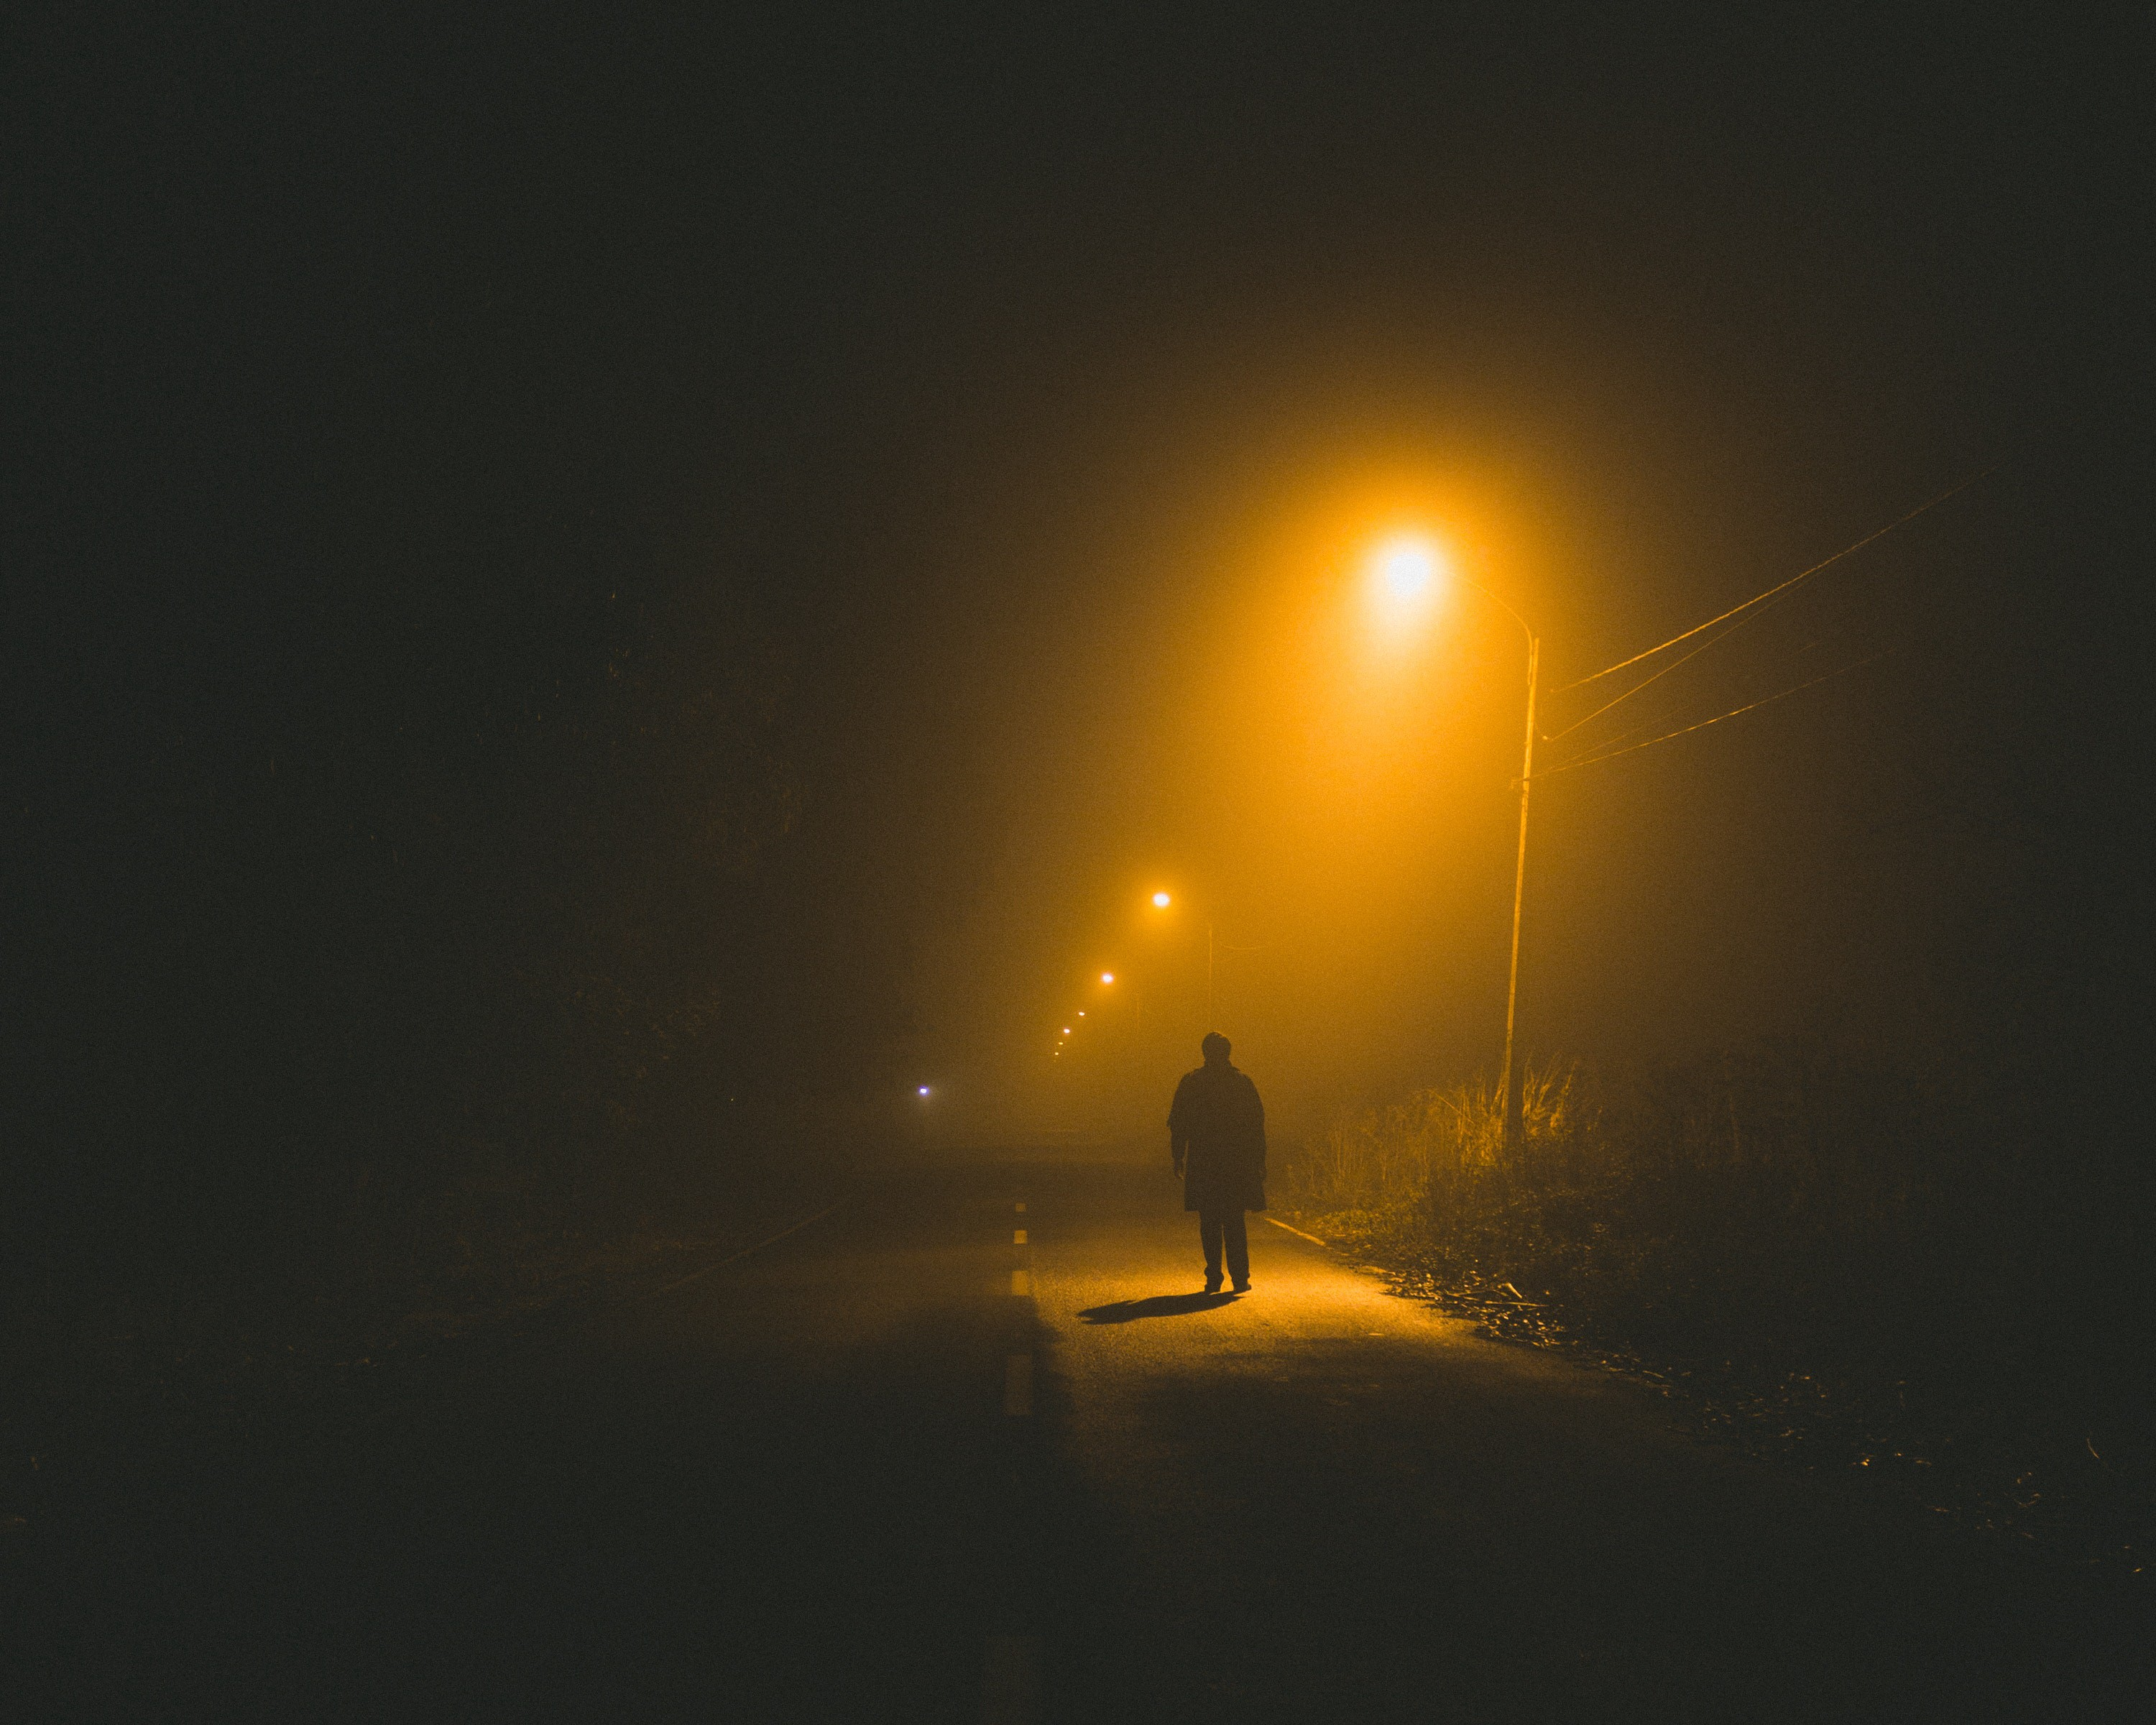 3 True Scary Horror Stories From Reddit R Letsnotmeet By Tony Yeung Life Hack Your Story Experience Etc Medium Train trip home from visiting my parents spent listening to the godzilla soundtrack and reading r/letsnotmeet and r/nosleep. 3 true scary horror stories from reddit